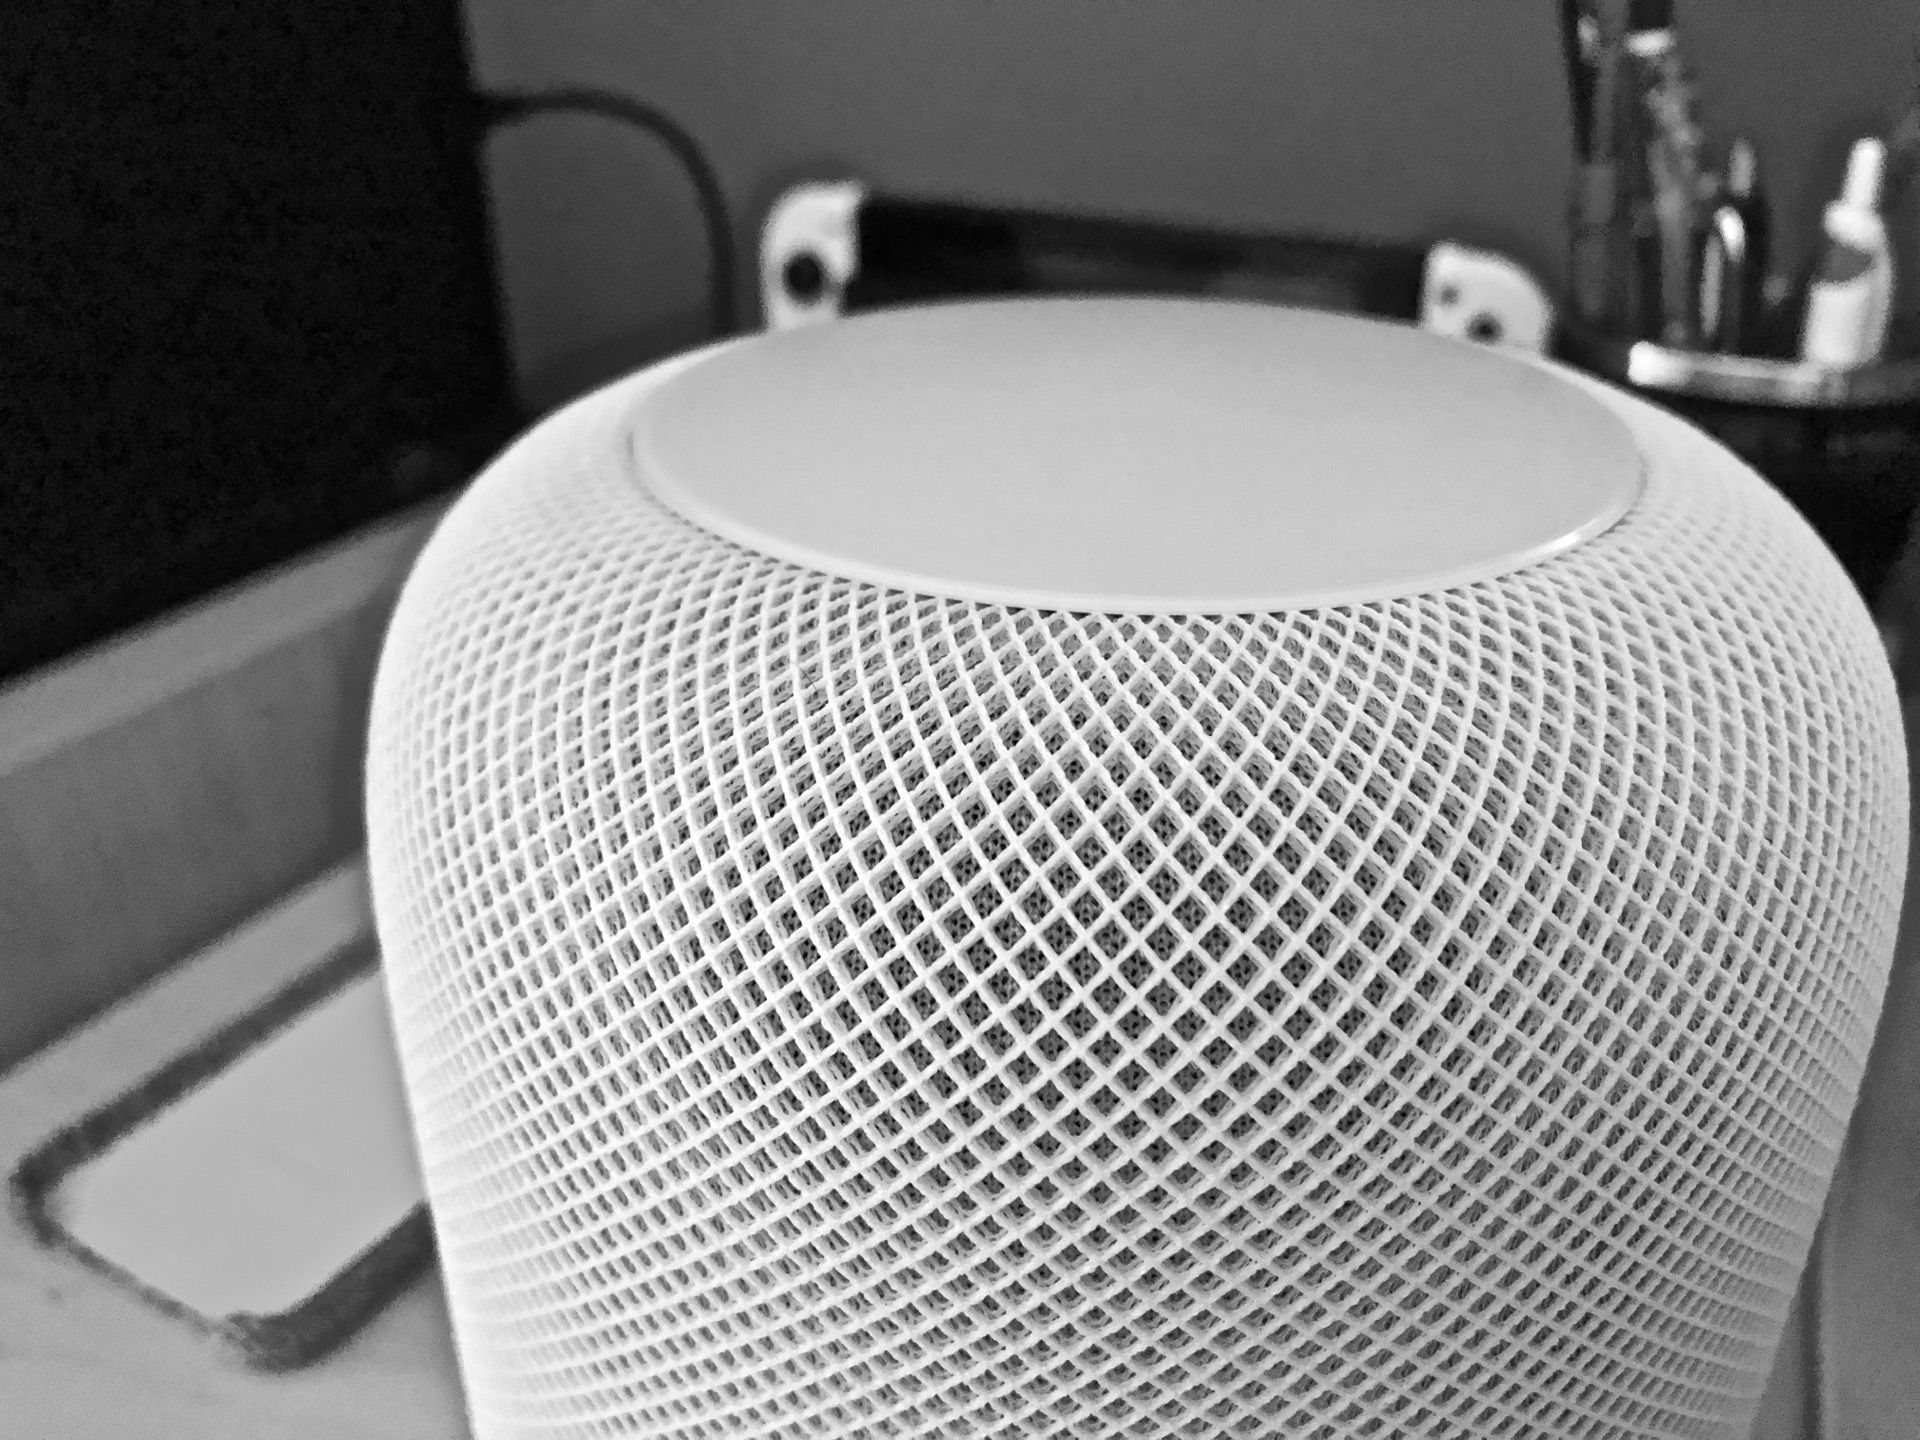 HomePod: The BirchTree Review